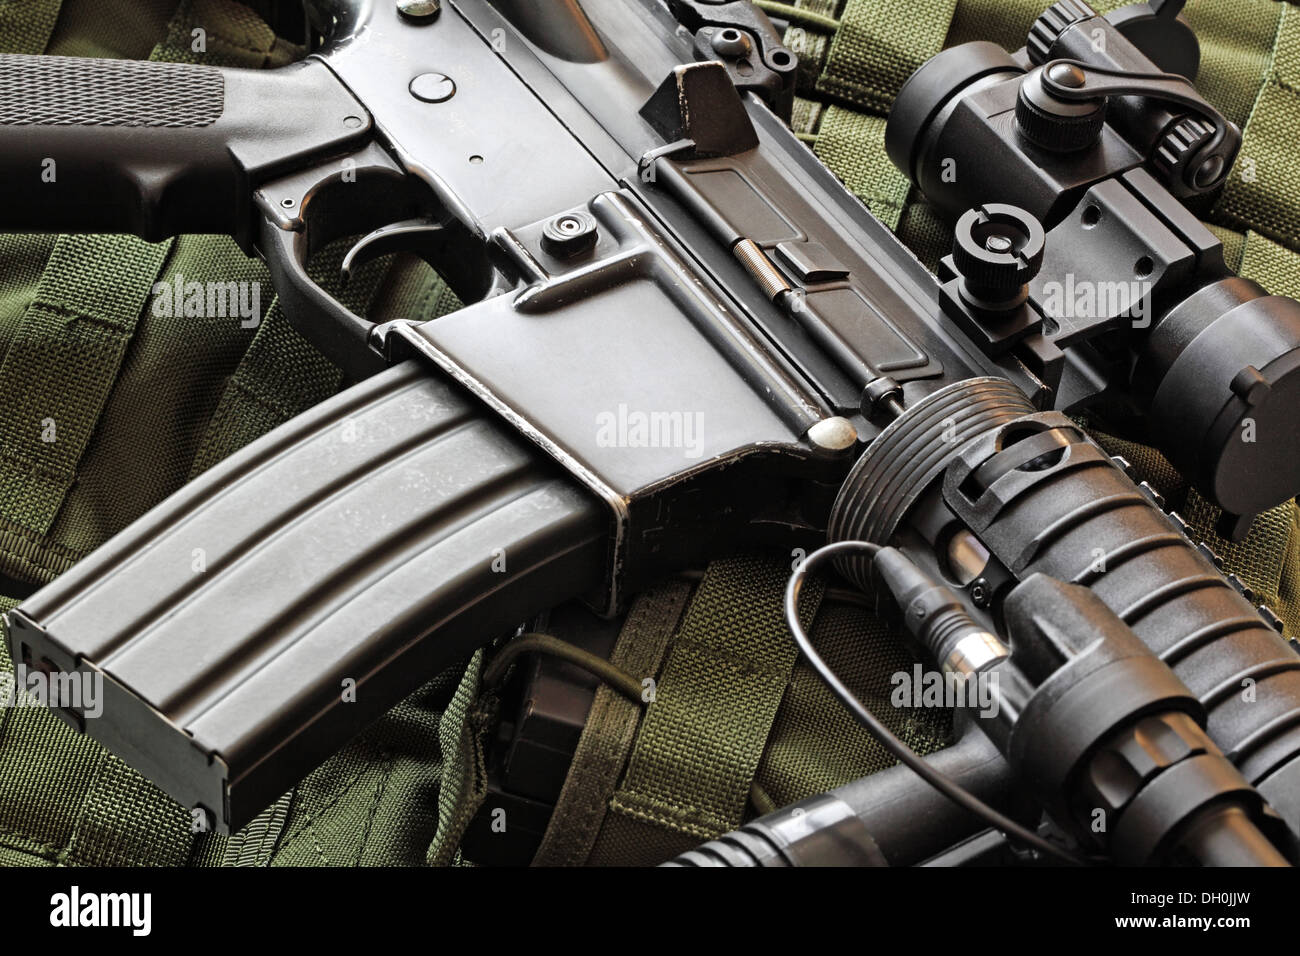 Close-up of a scratched M4A1 (AR-15) carbine and green military tactical vest - Stock Image